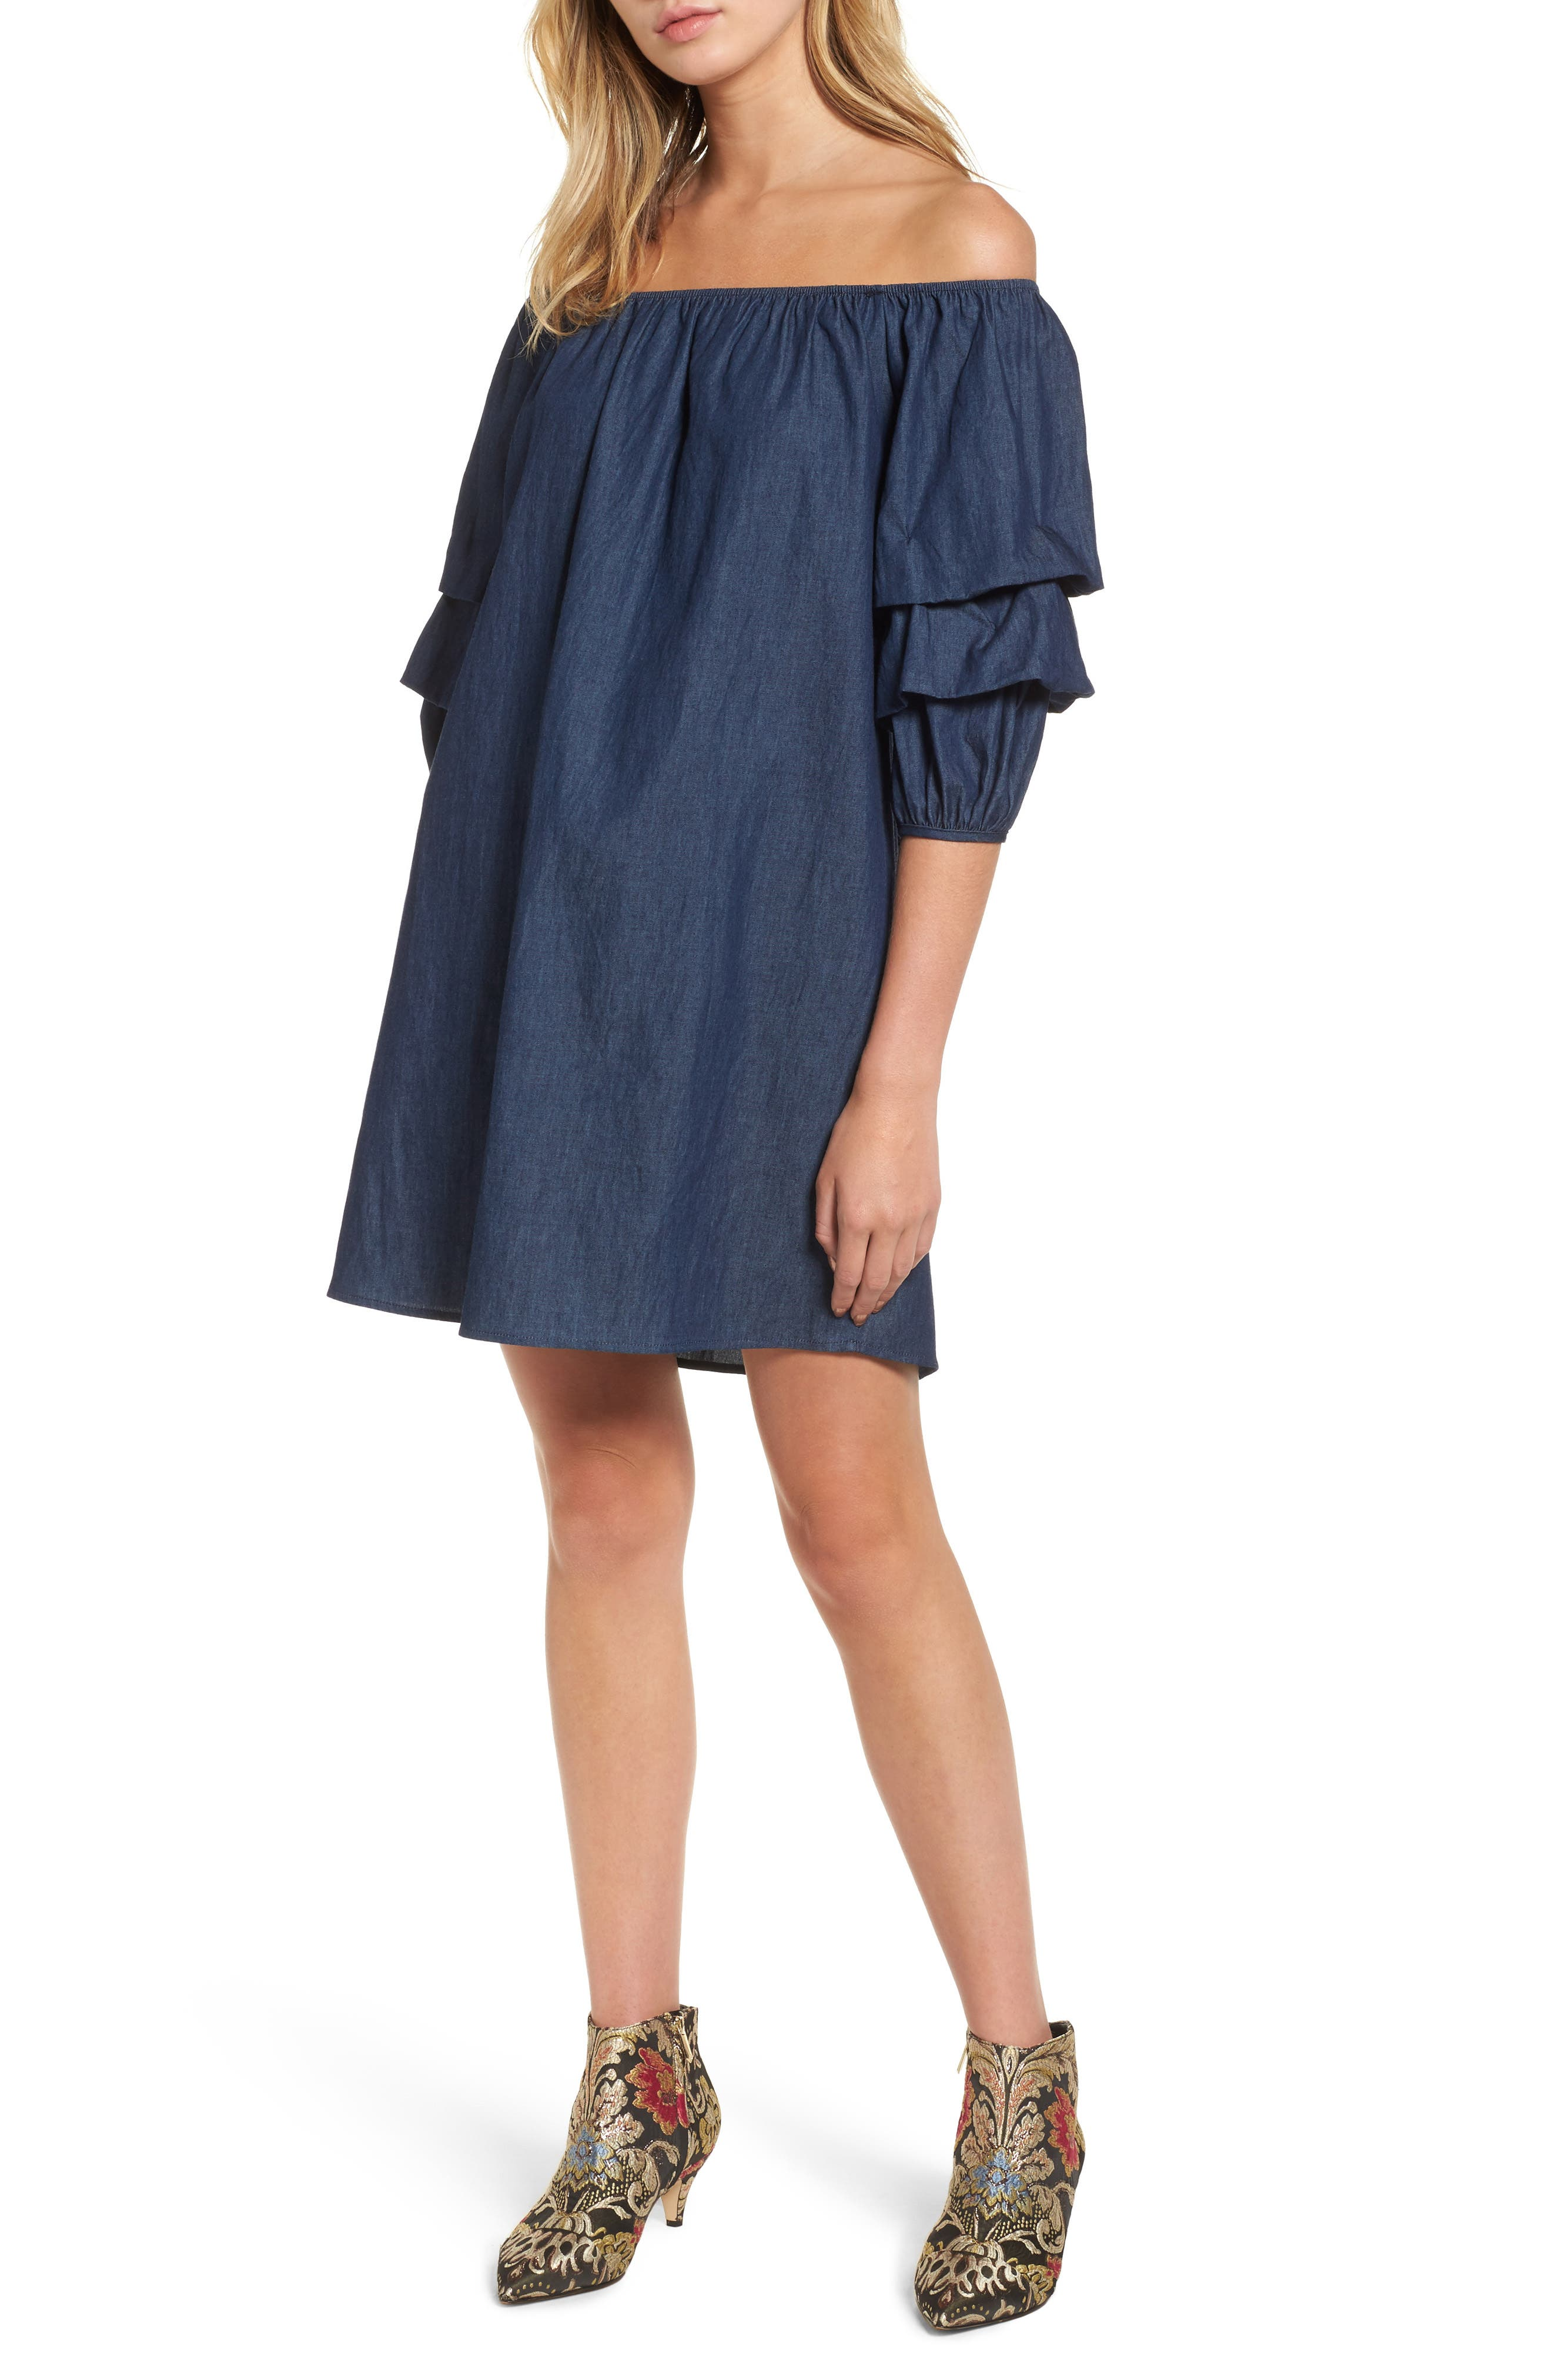 Off the Shoulder Denim Dress,                             Main thumbnail 1, color,                             401